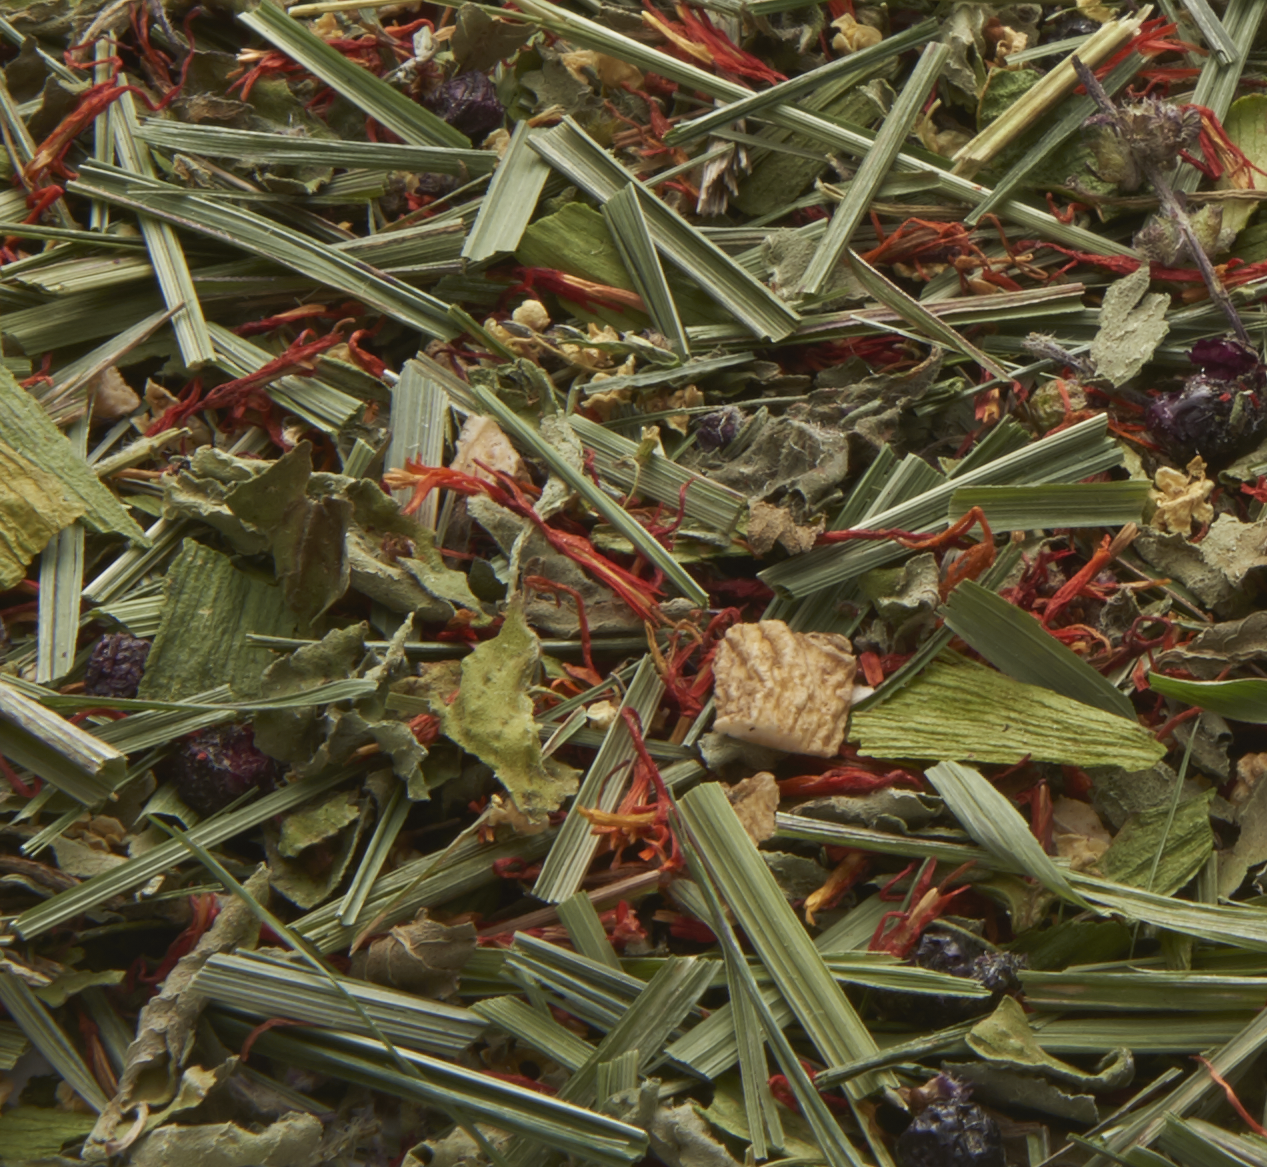 Since our teas are whole leaf and additive free they take a little longer to brew. Pour 12 oz boiling water over 2 grams of herbs. Let brew for 7 - 10 minutes. Strain, then enjoy